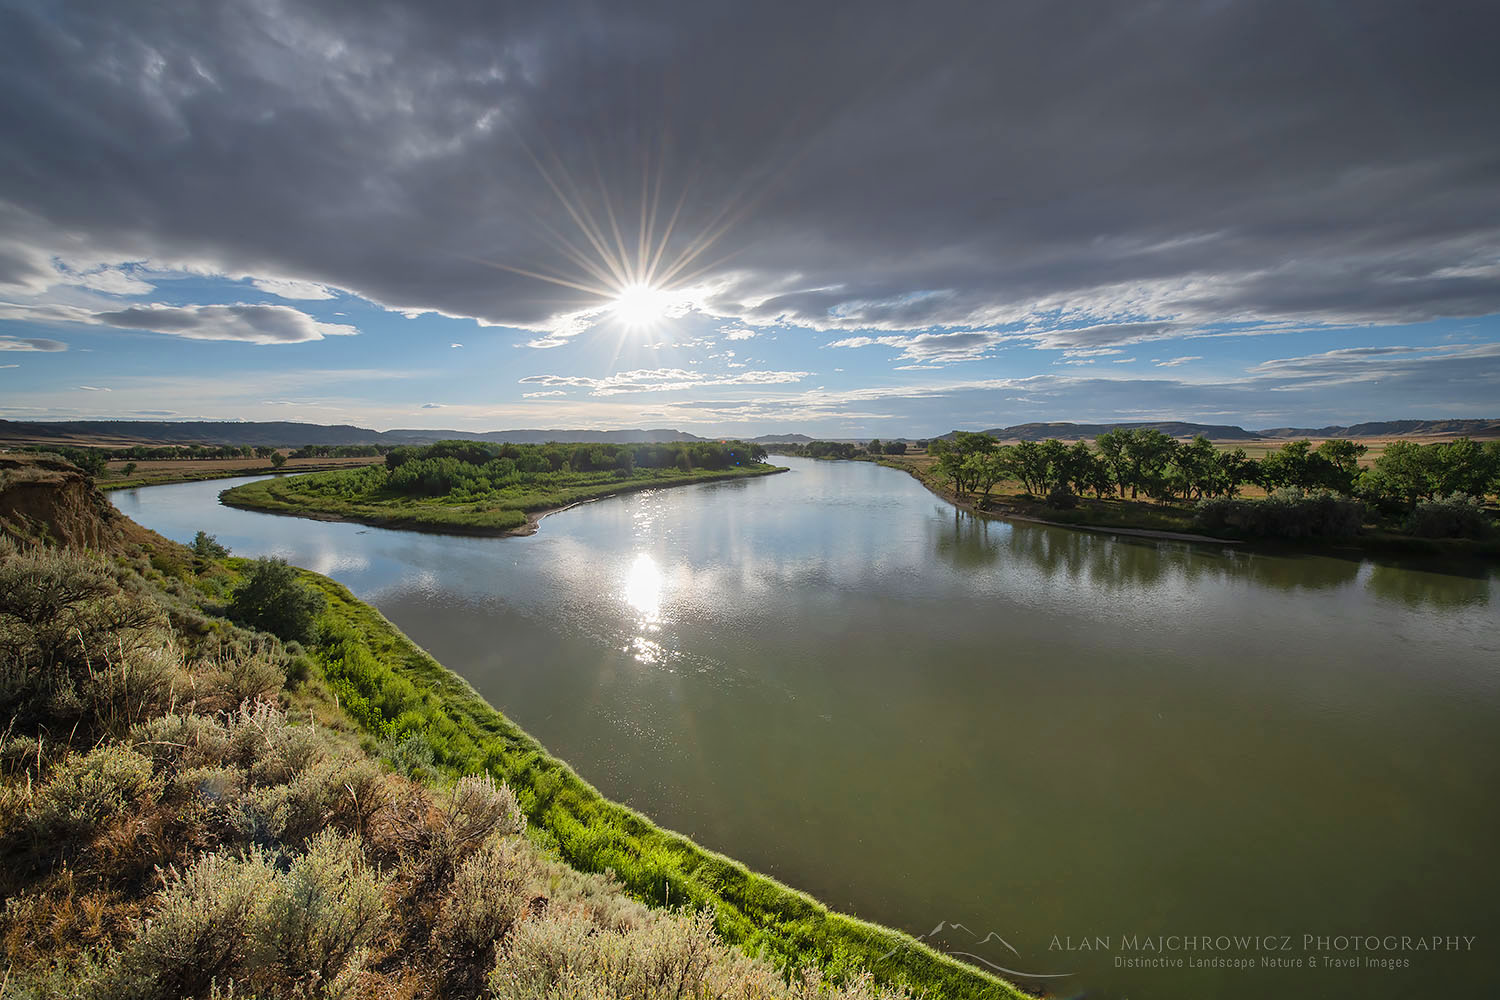 Missouri River Breaks near Judith Landing, Montana